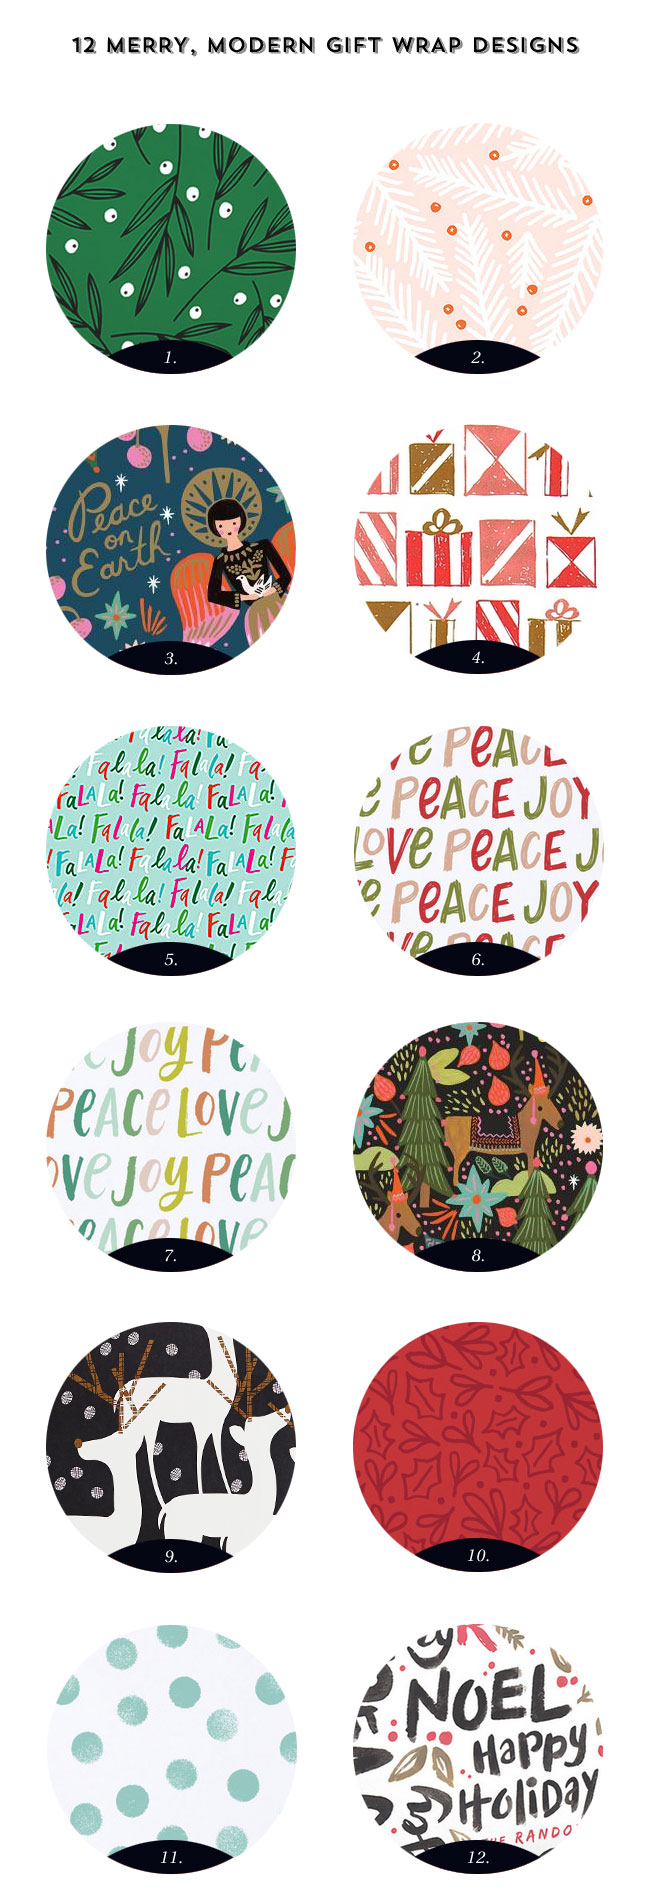 12 Merry, Modern Holiday Gift Wrap Designs